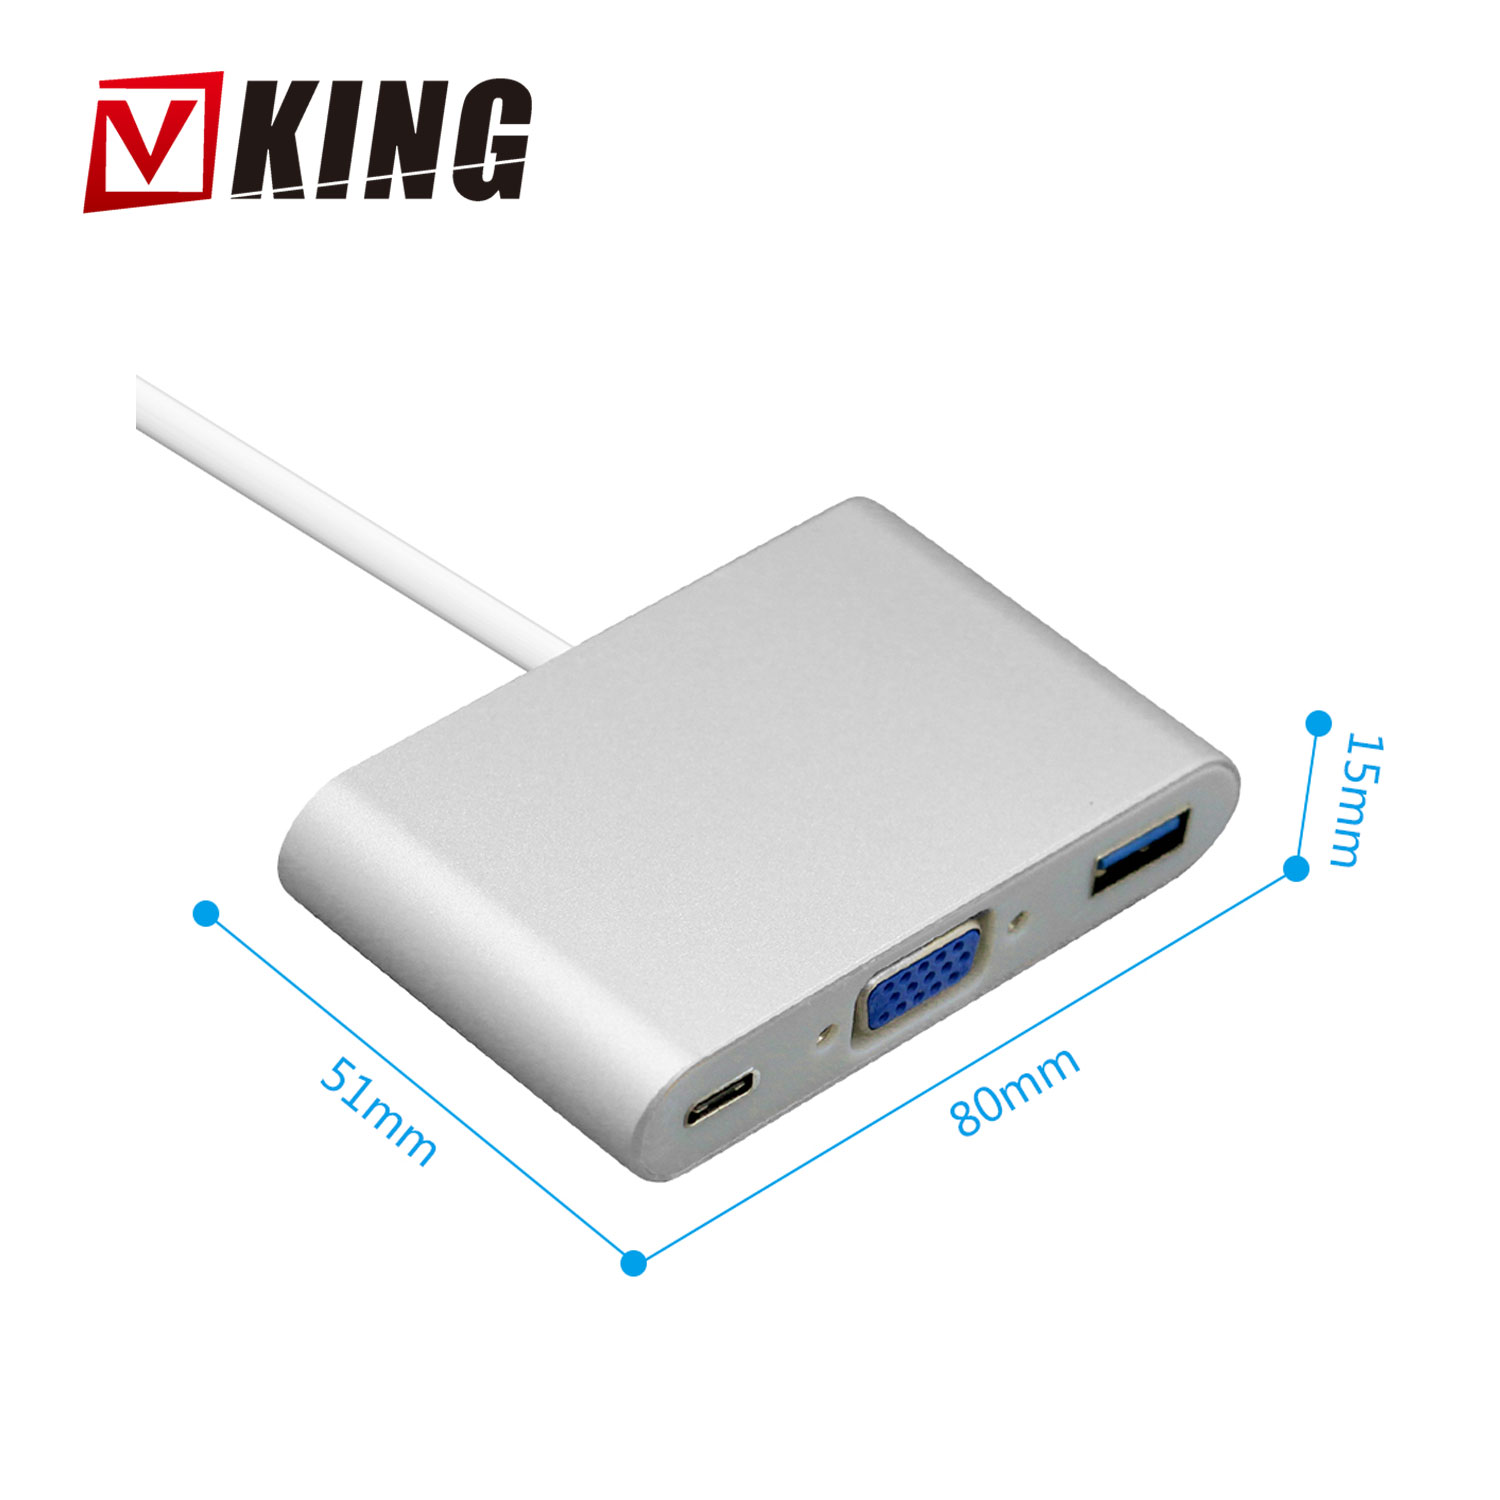 2018 high quality 3in1 multiport type usb c to usb 3.0 VGA HUB converter adapter